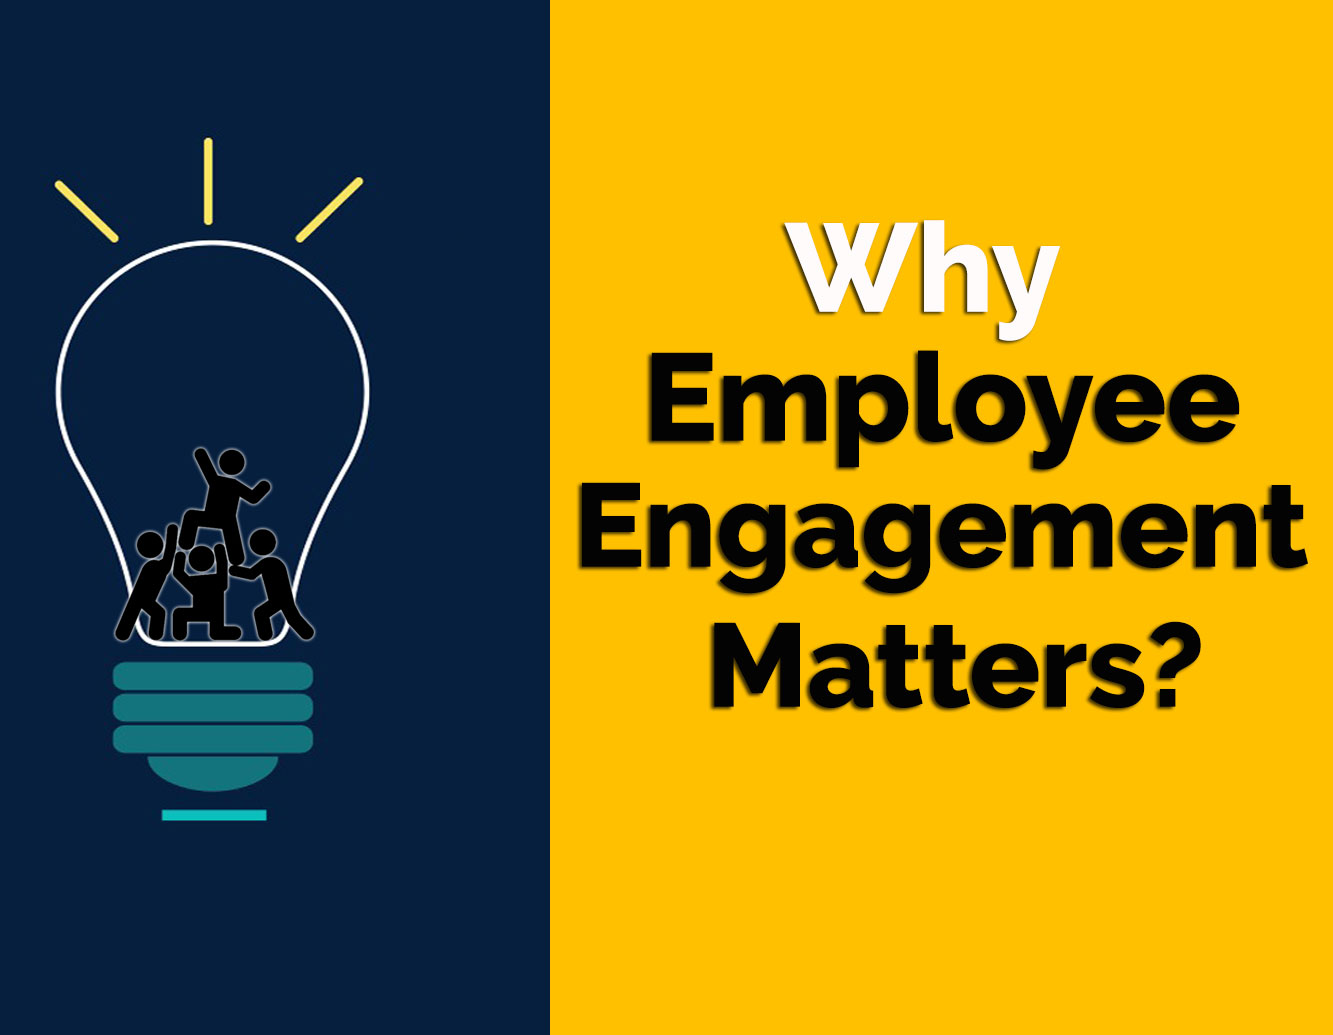 Why Employee Engagement Matters?